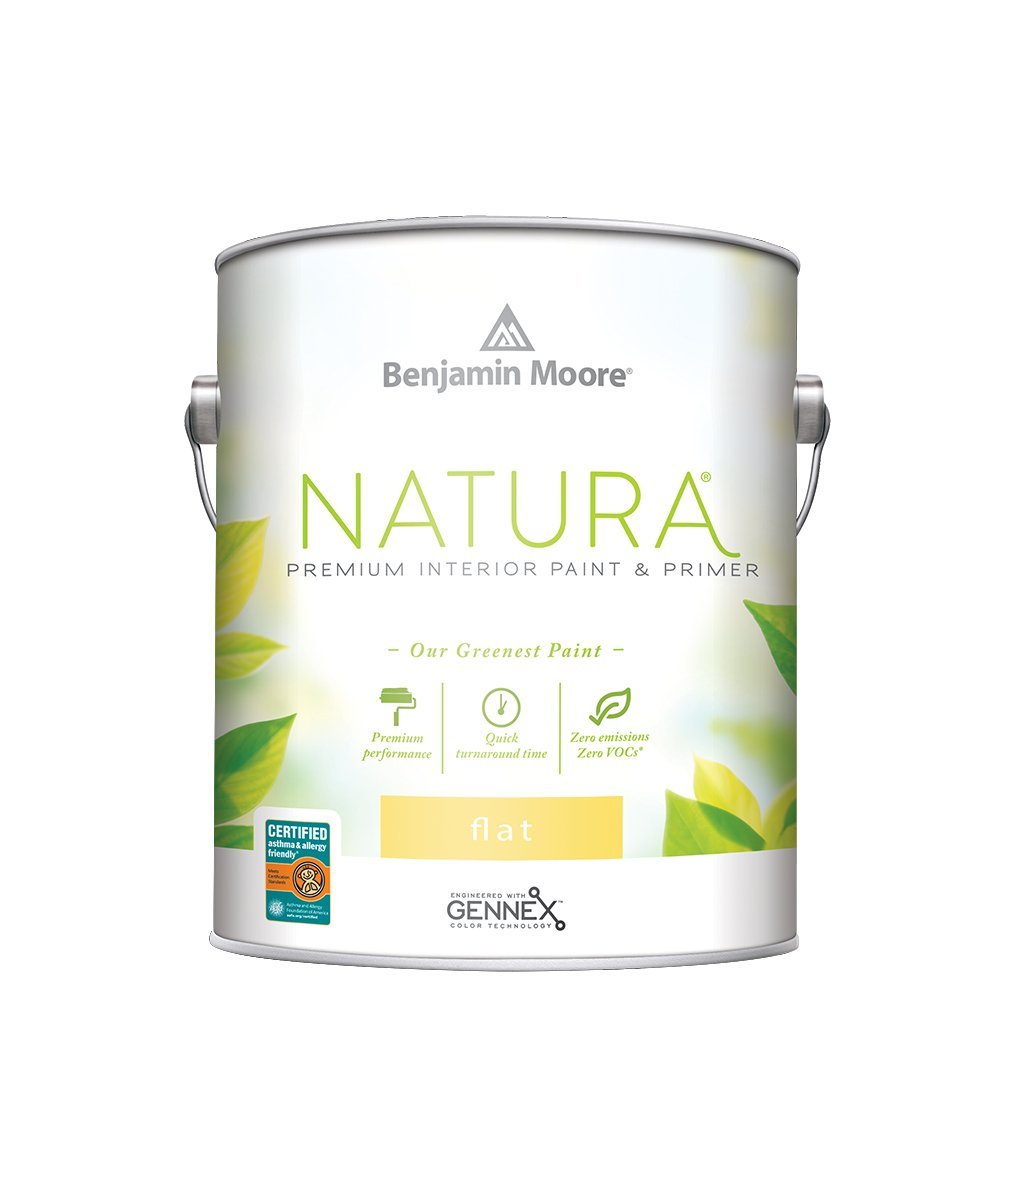 Benjamin Moore Flat Natura Paint available at Regal Paint Centers.